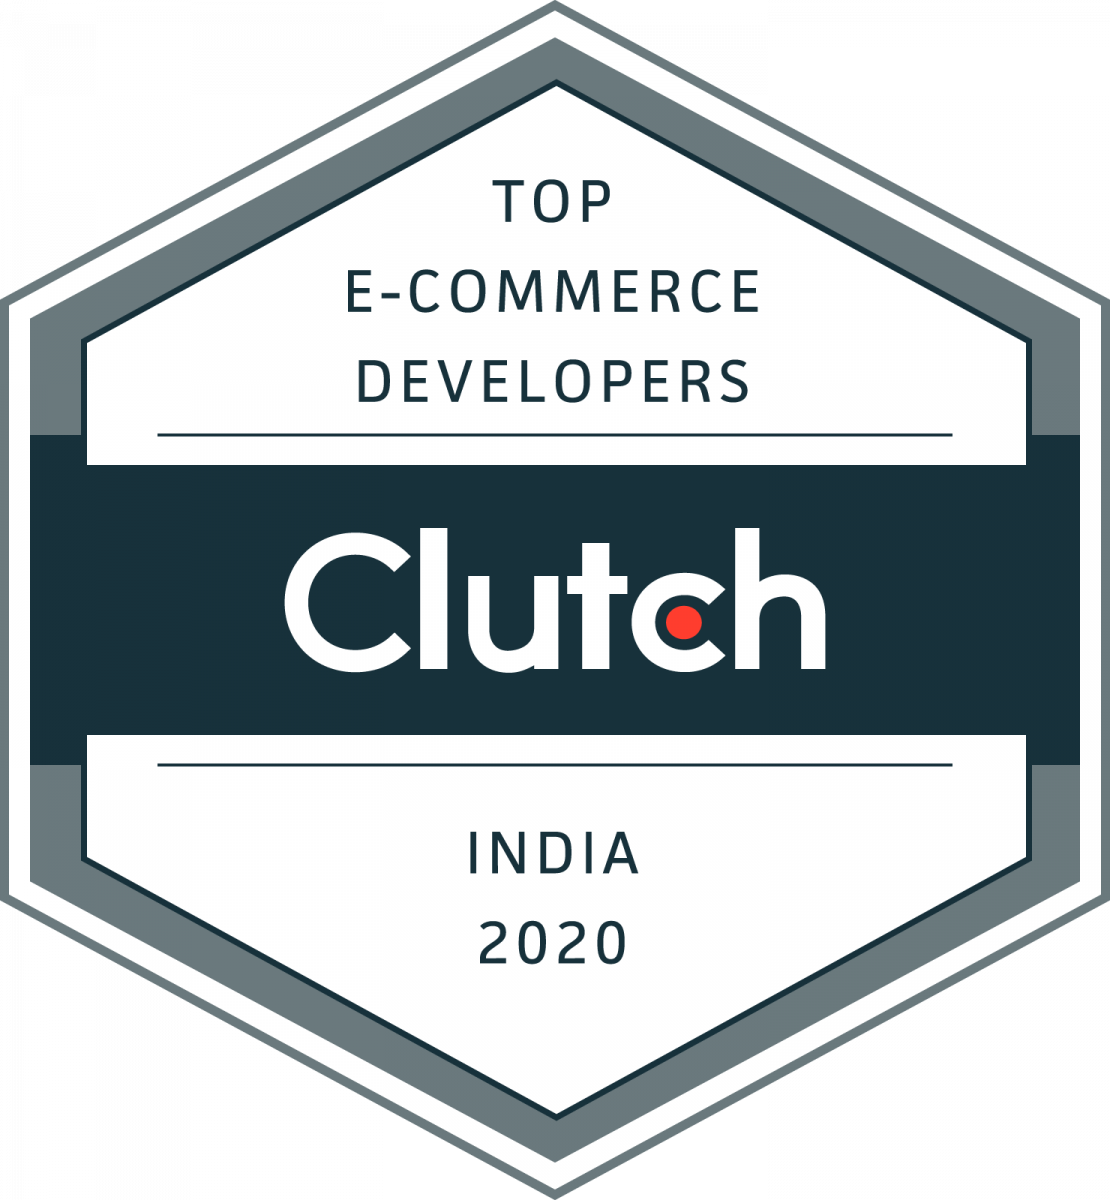 E-Commerce Leaders in India 2020